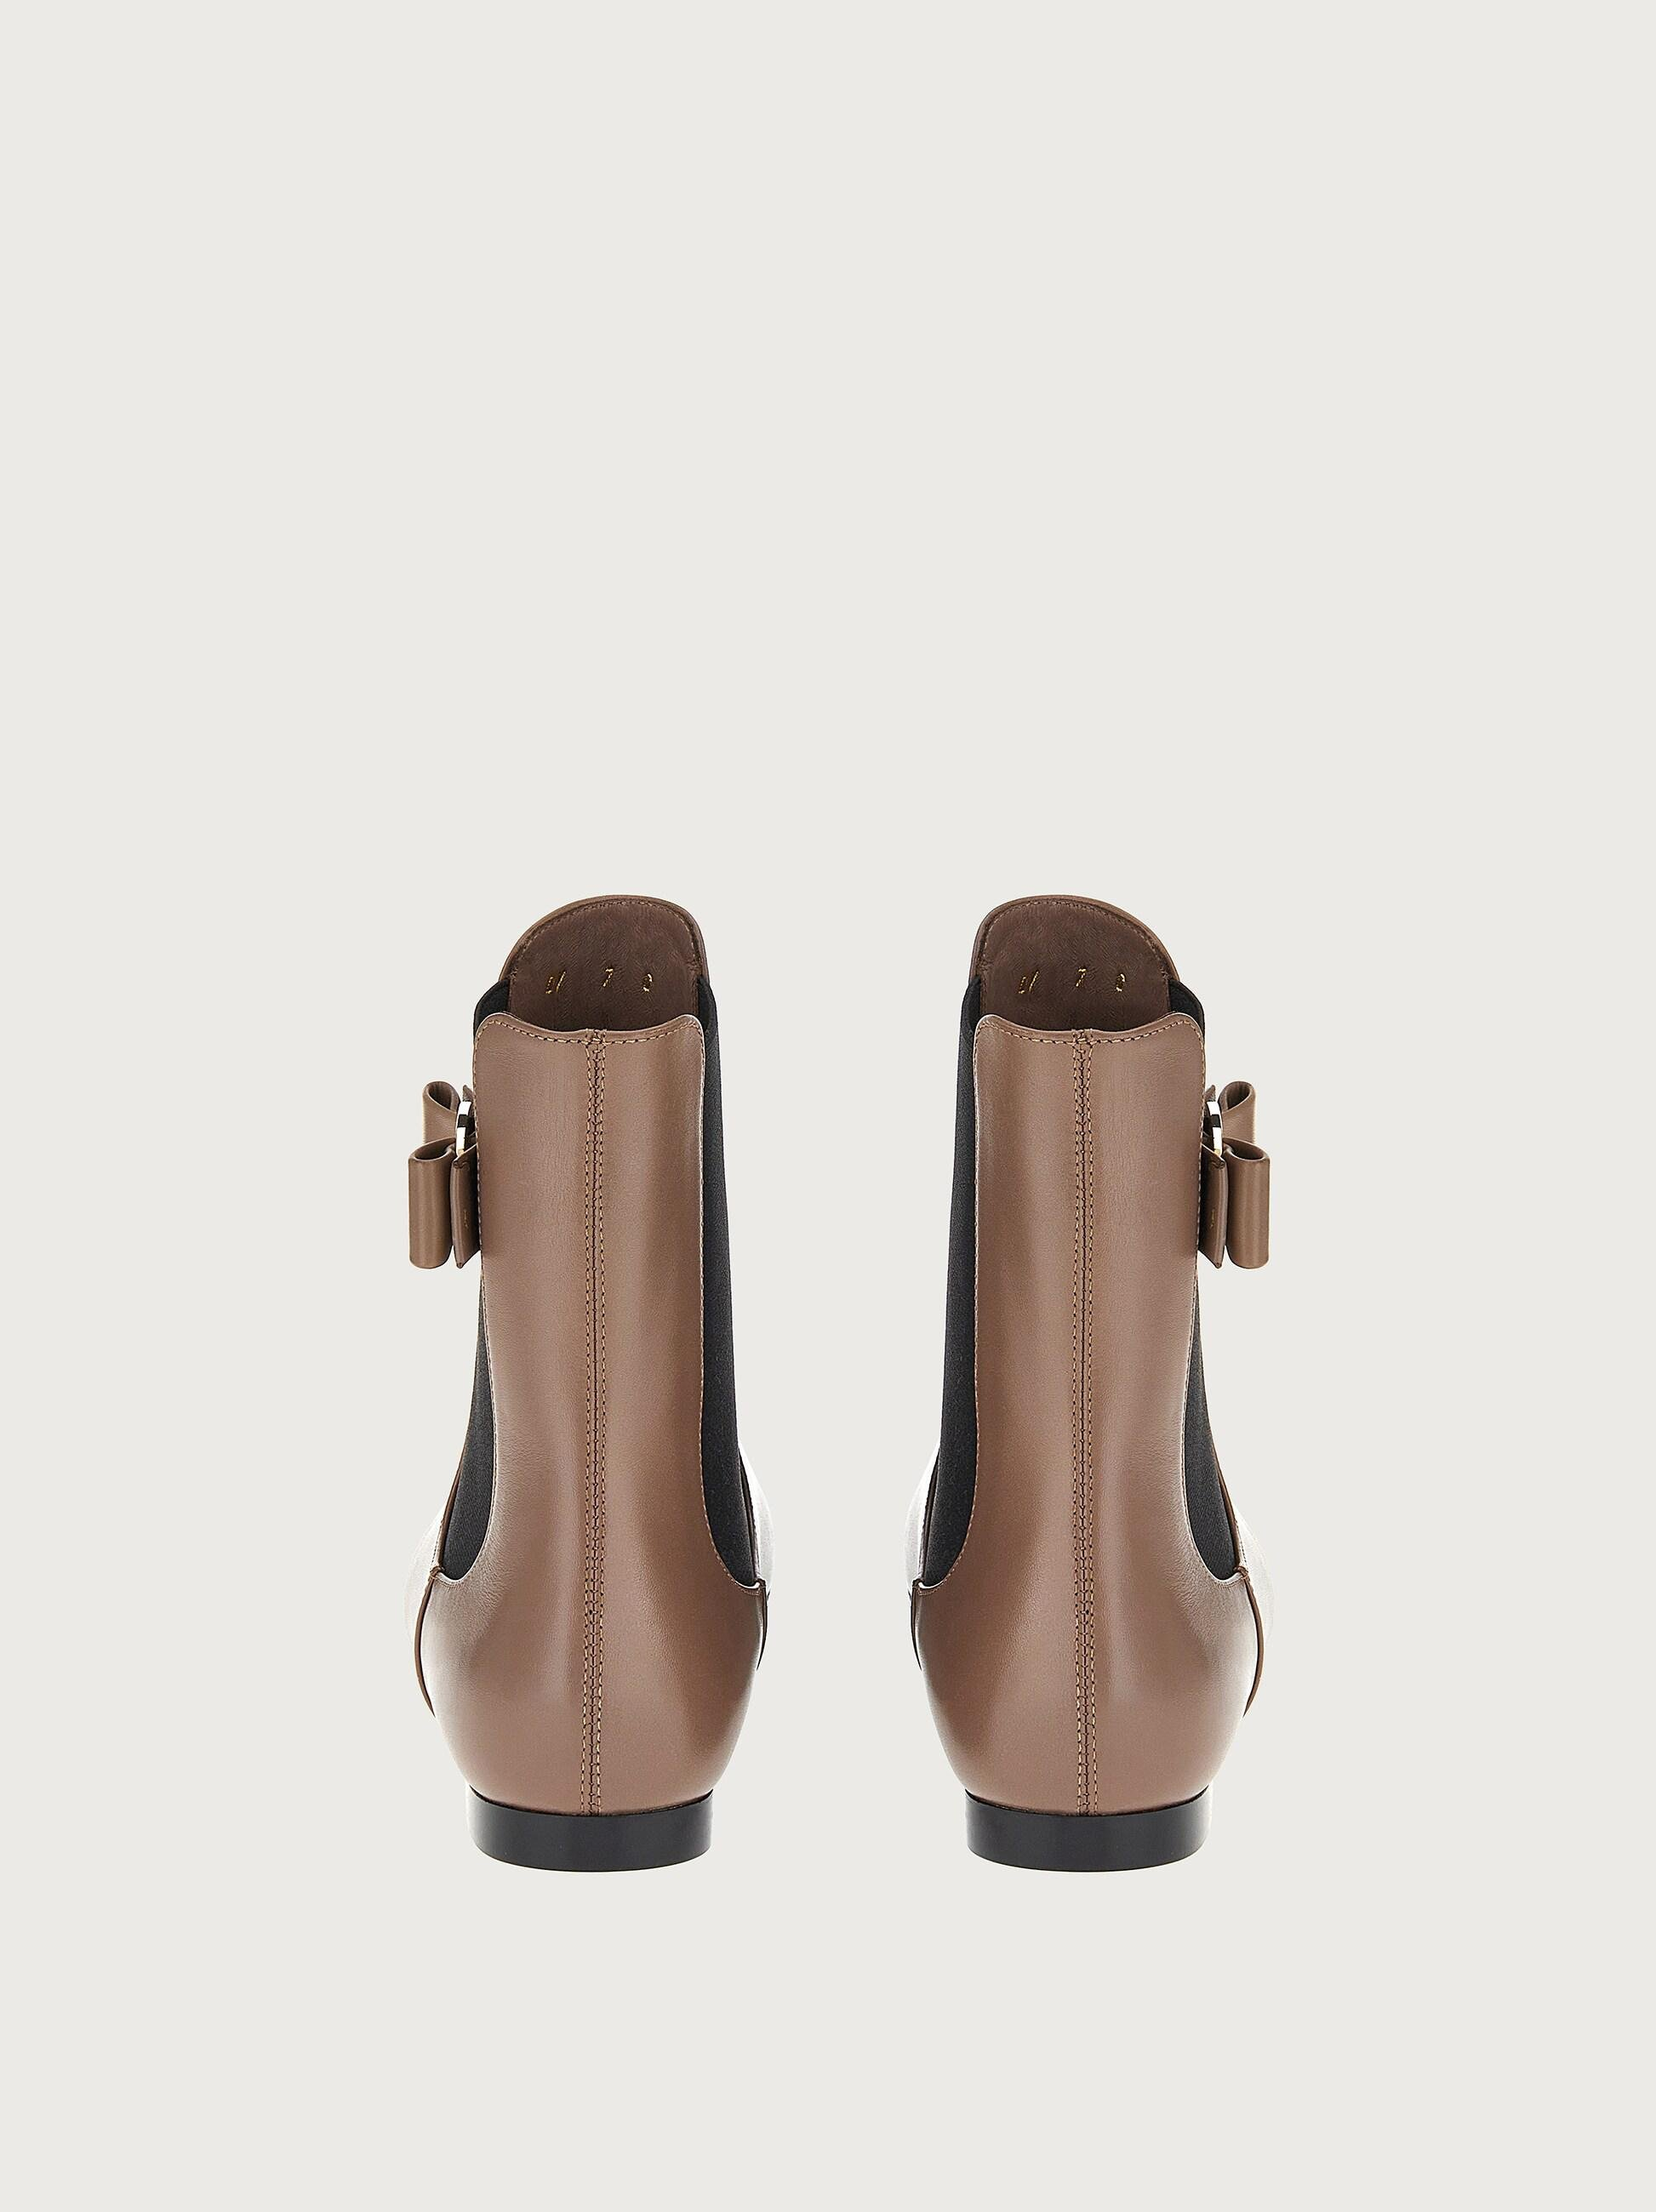 CHELSEA BOOT WITH VARA BOW 2